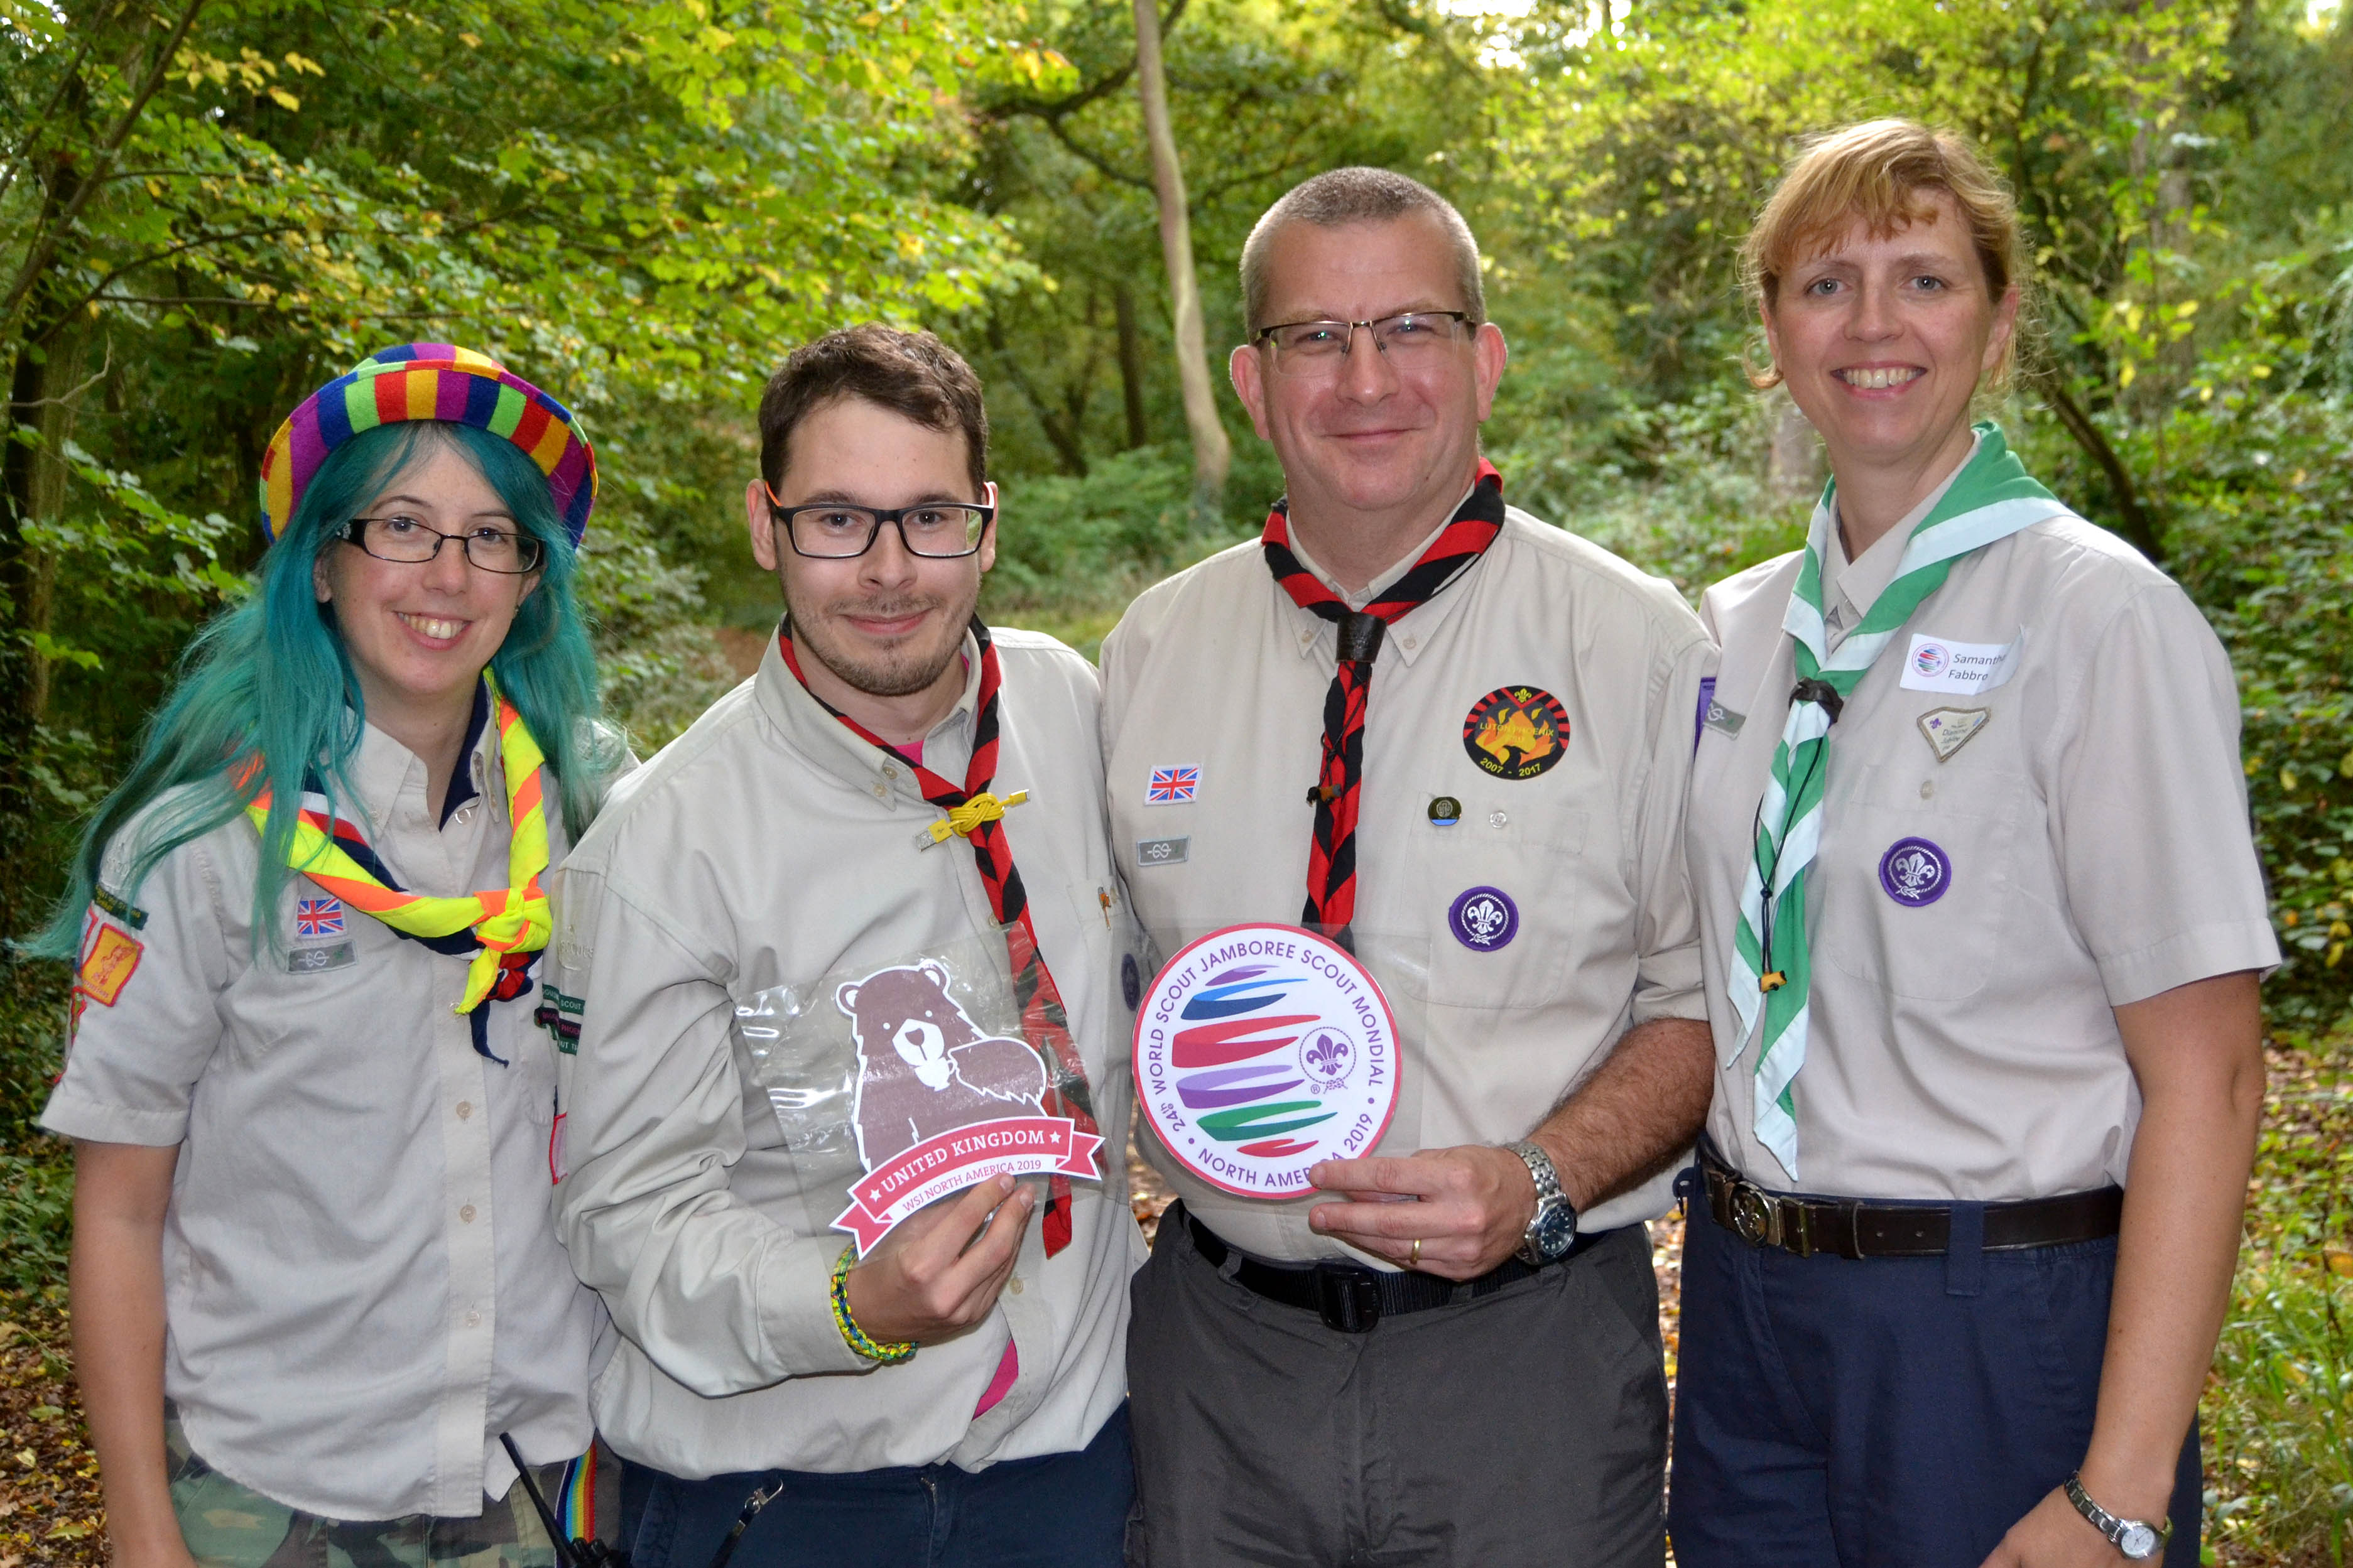 Beds Jamboree Leaders take centre stage